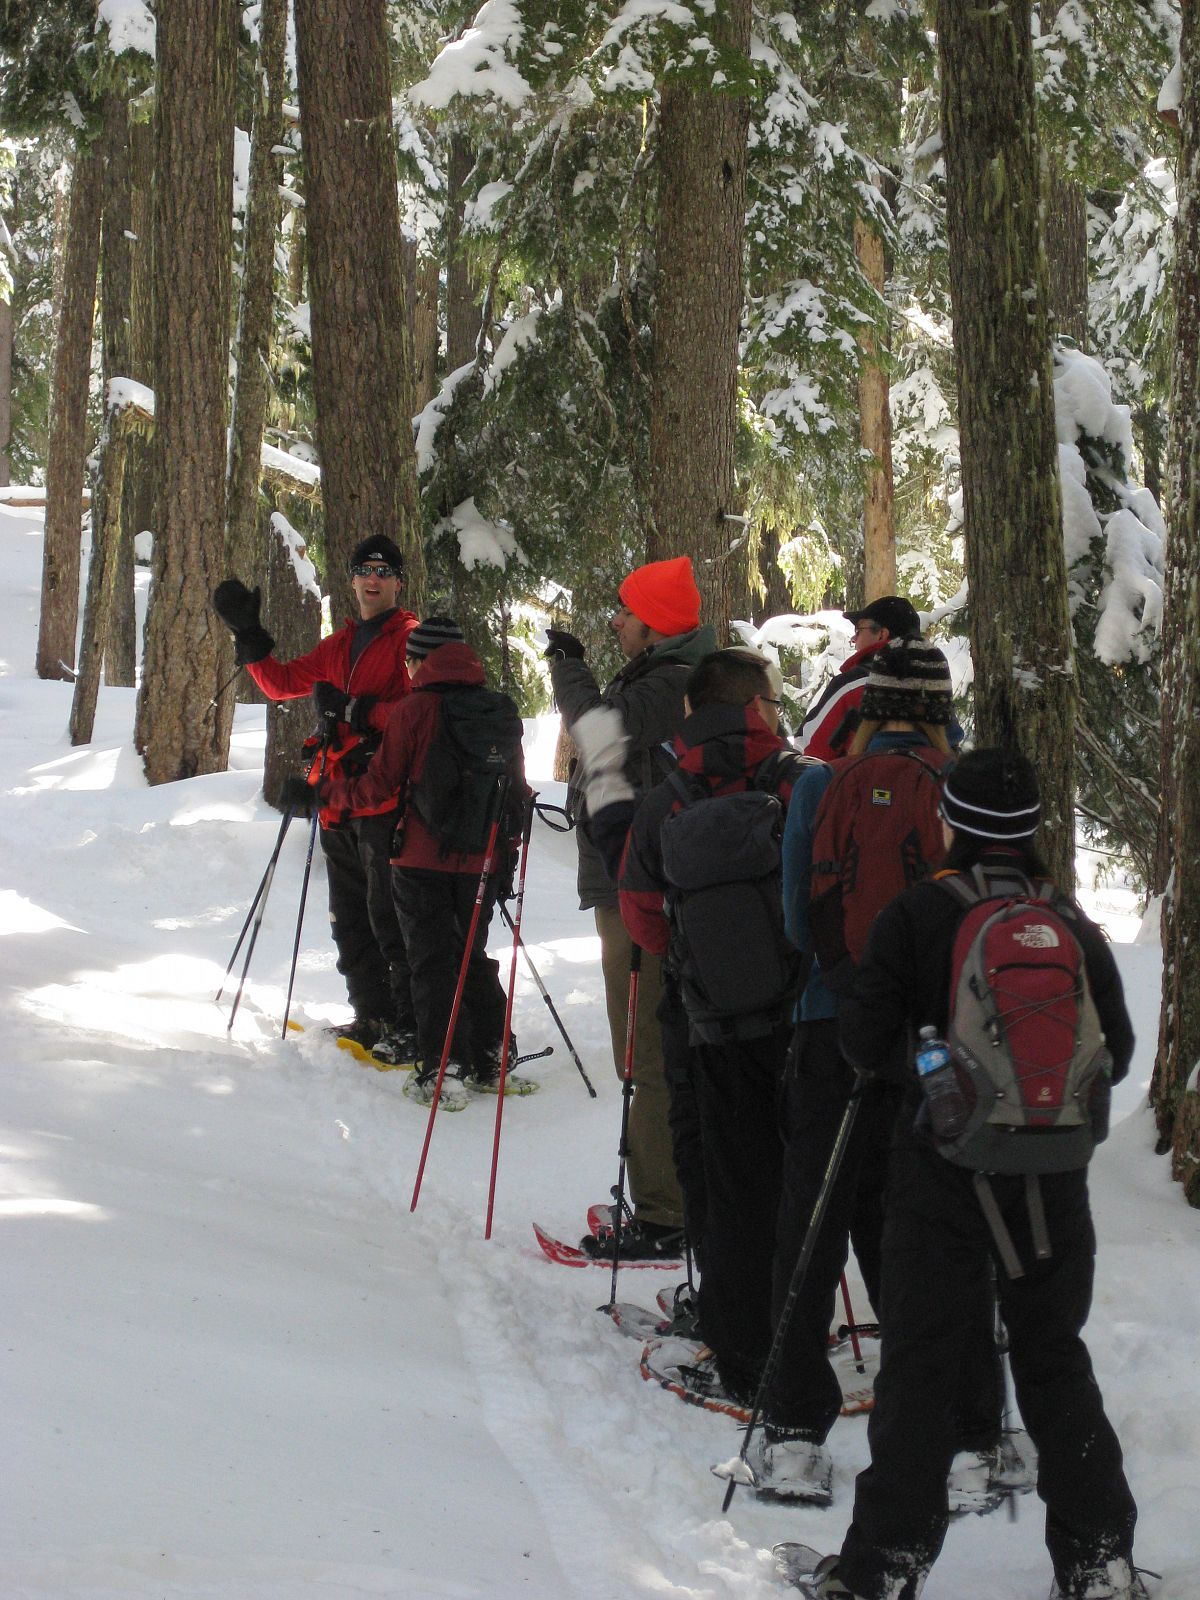 Getting some exercise - from the Snowshoe Trip to Twin Lake 2013 photo gallery.